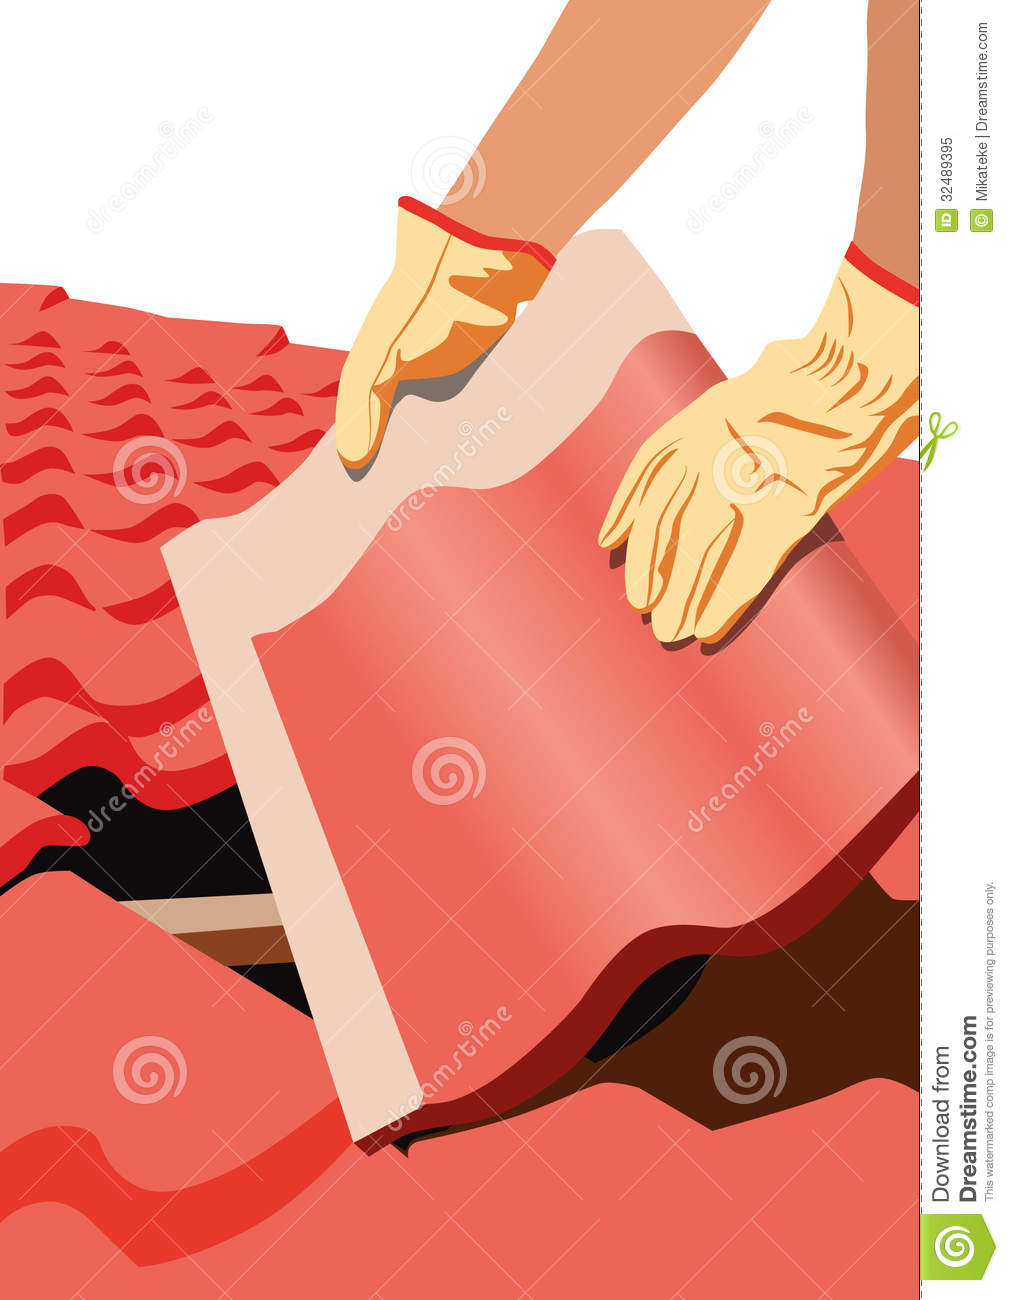 roofer-vector-image-who-puts-tile-roof-roof-repairs-building-32489395    Roofer Vector